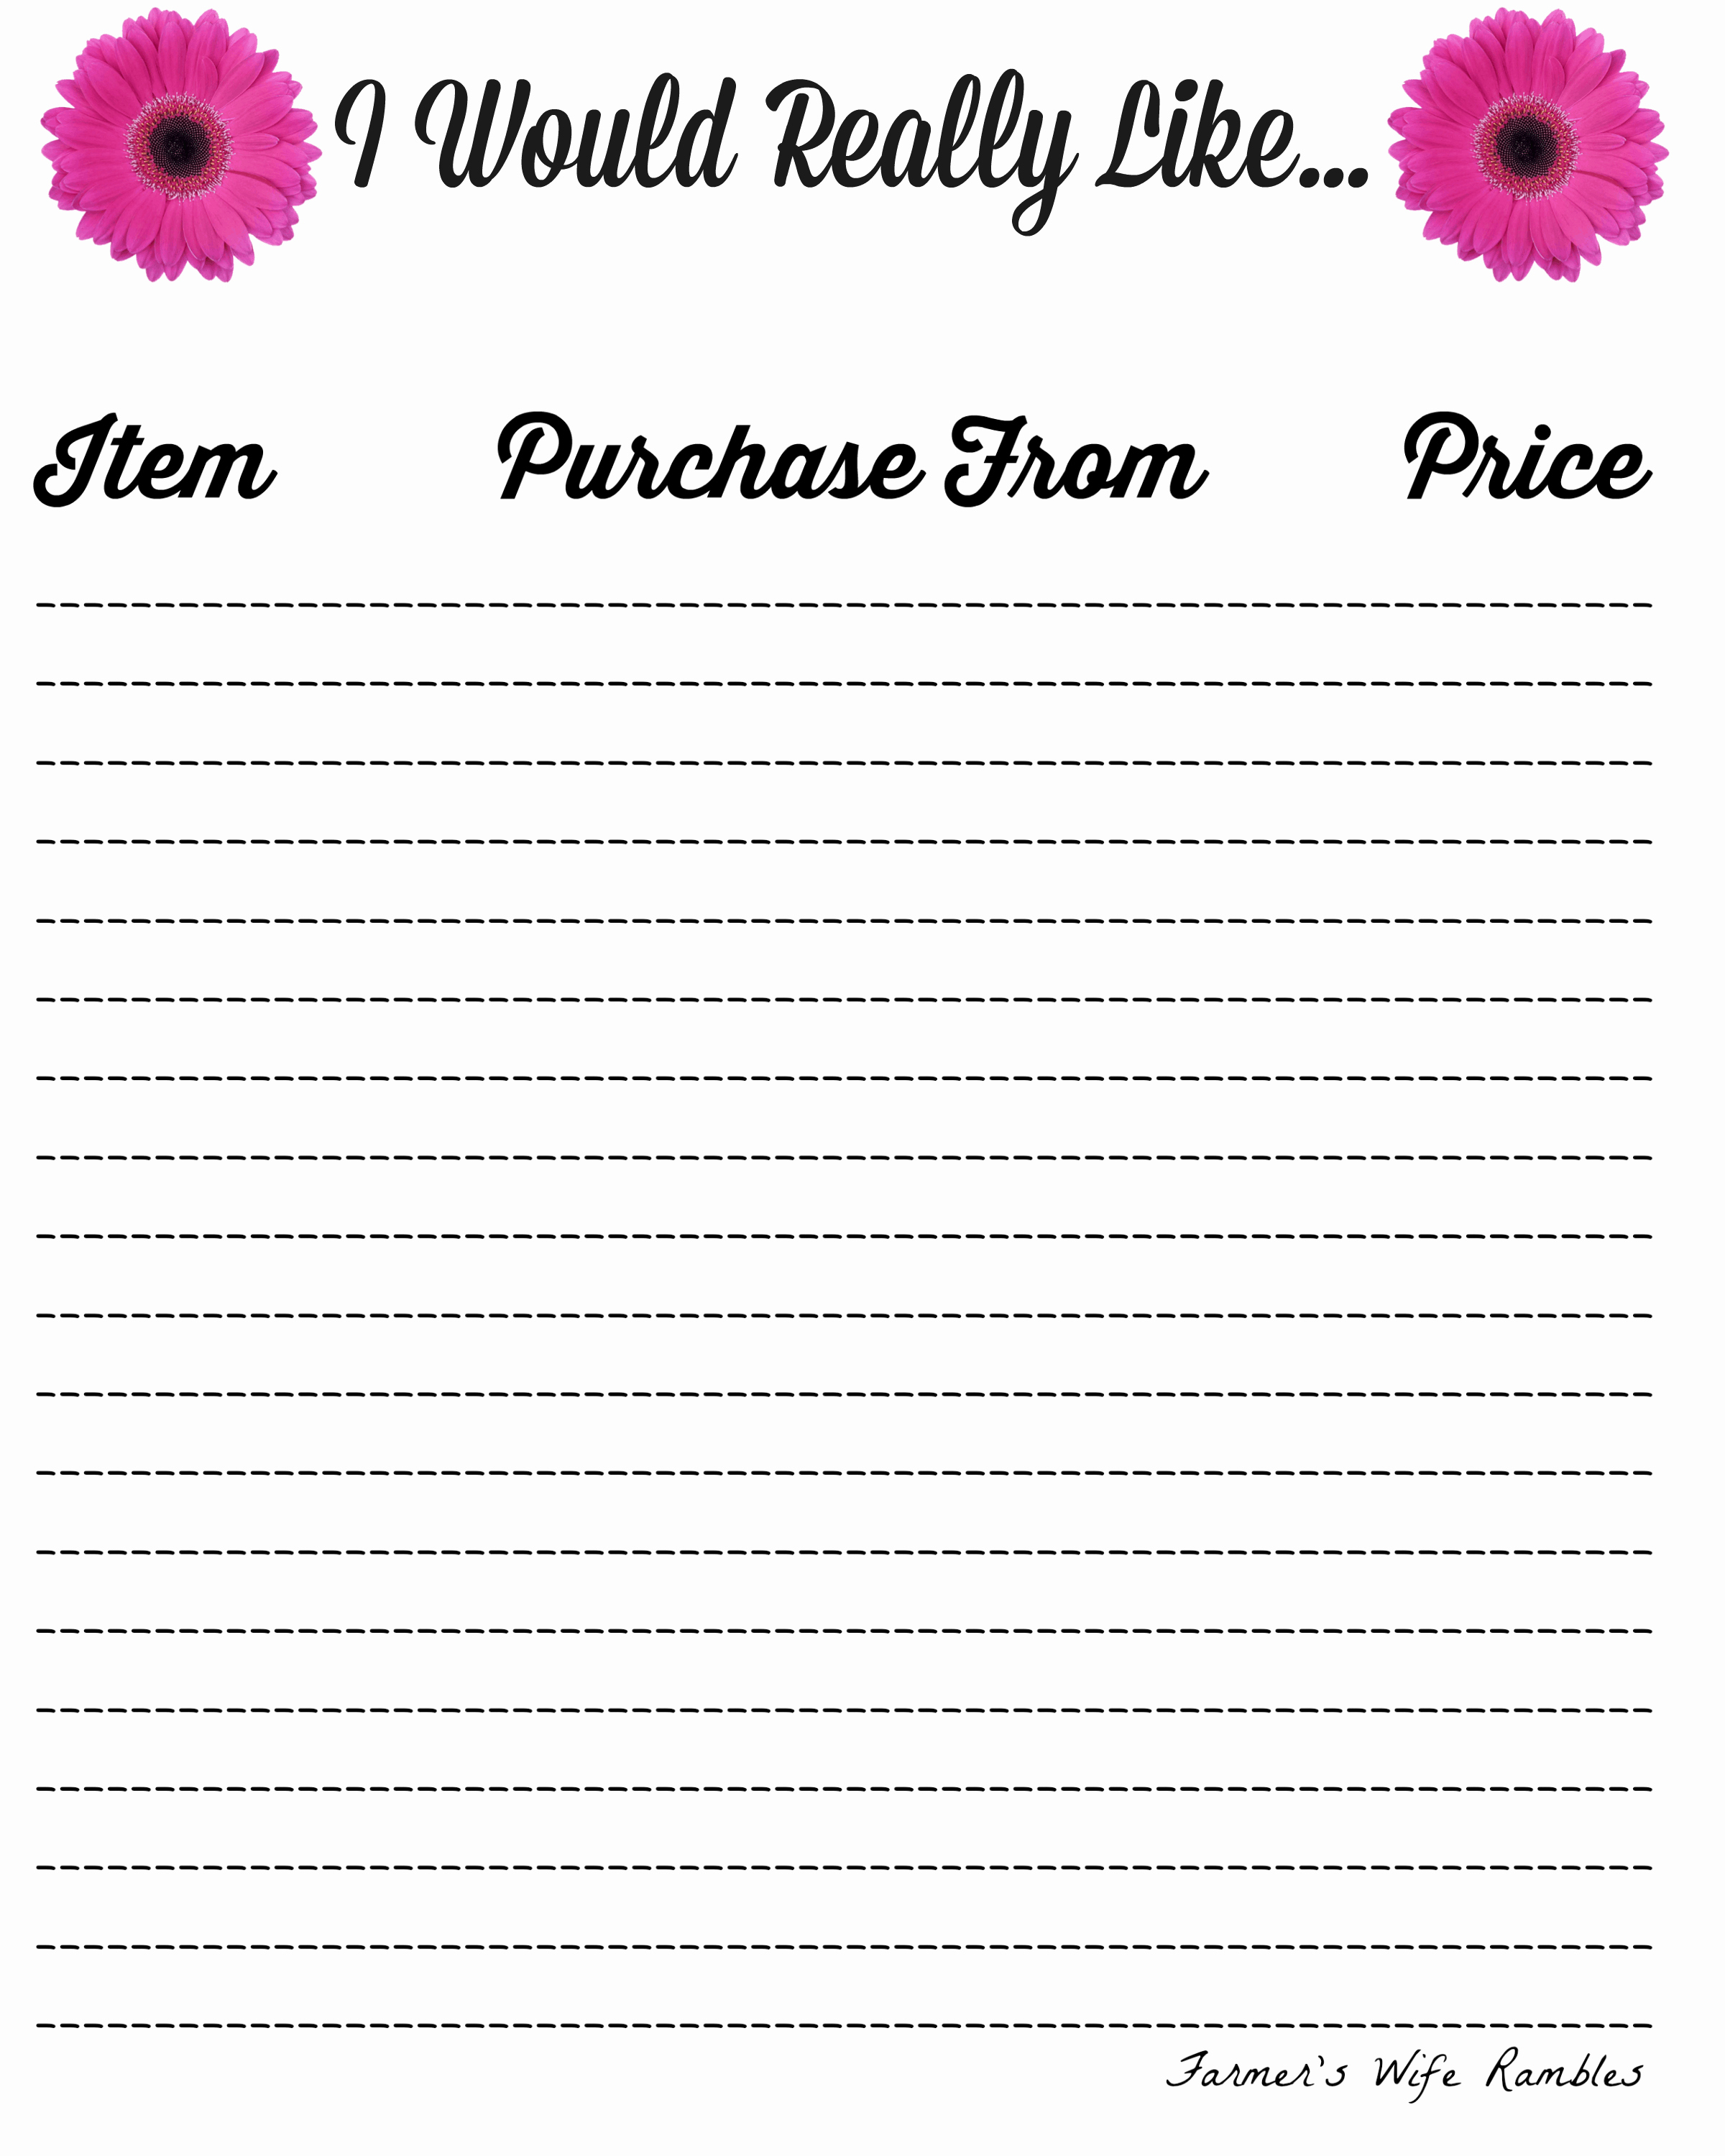 Birthday Wish List Template Inspirational Free Wish List Printables 5 Designs to Pick From Farmer S Wife Rambles